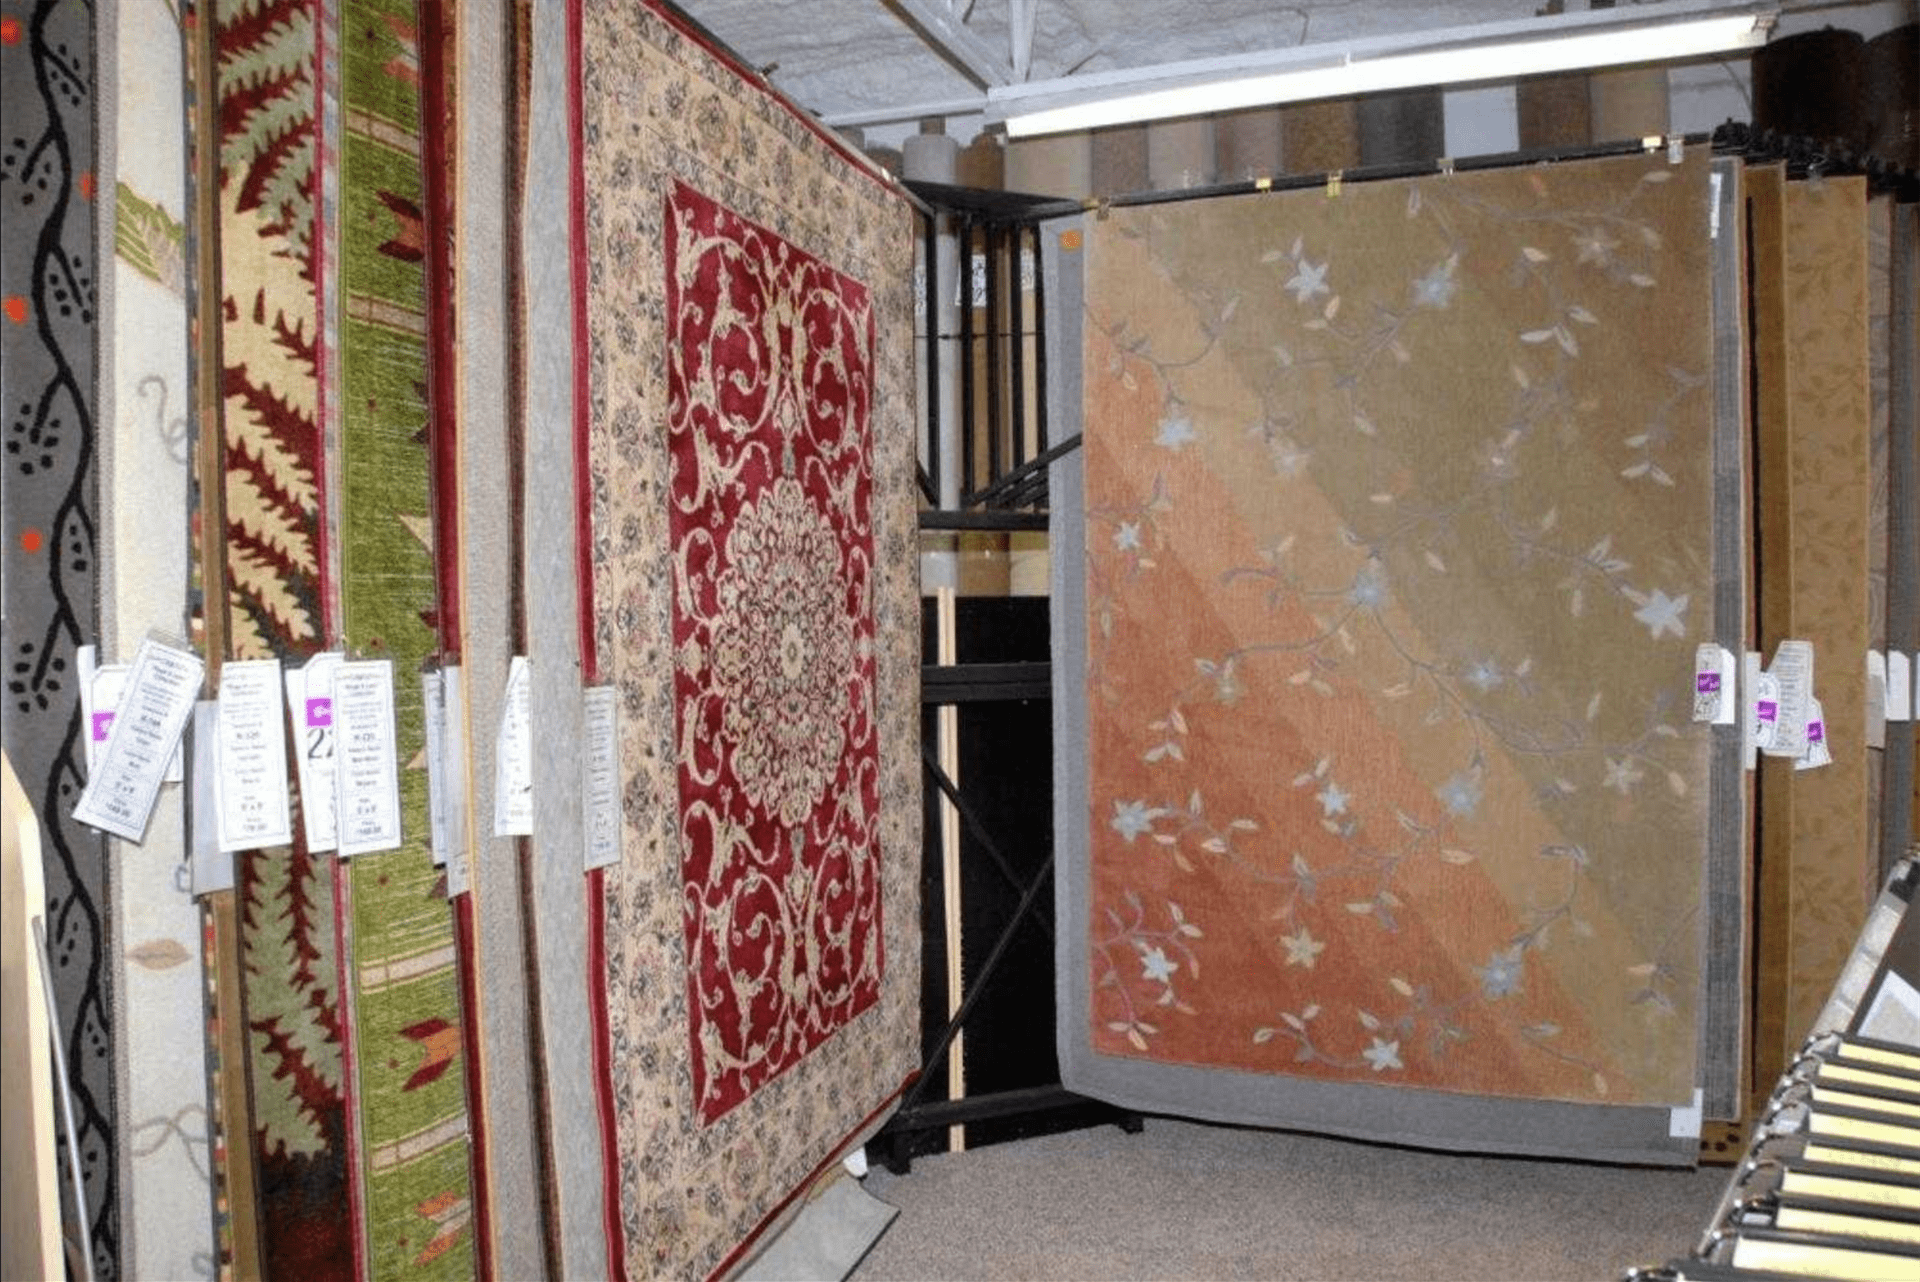 Flip through our large area rugs at Britt's Carpet Outlet in Cape Coral, FL